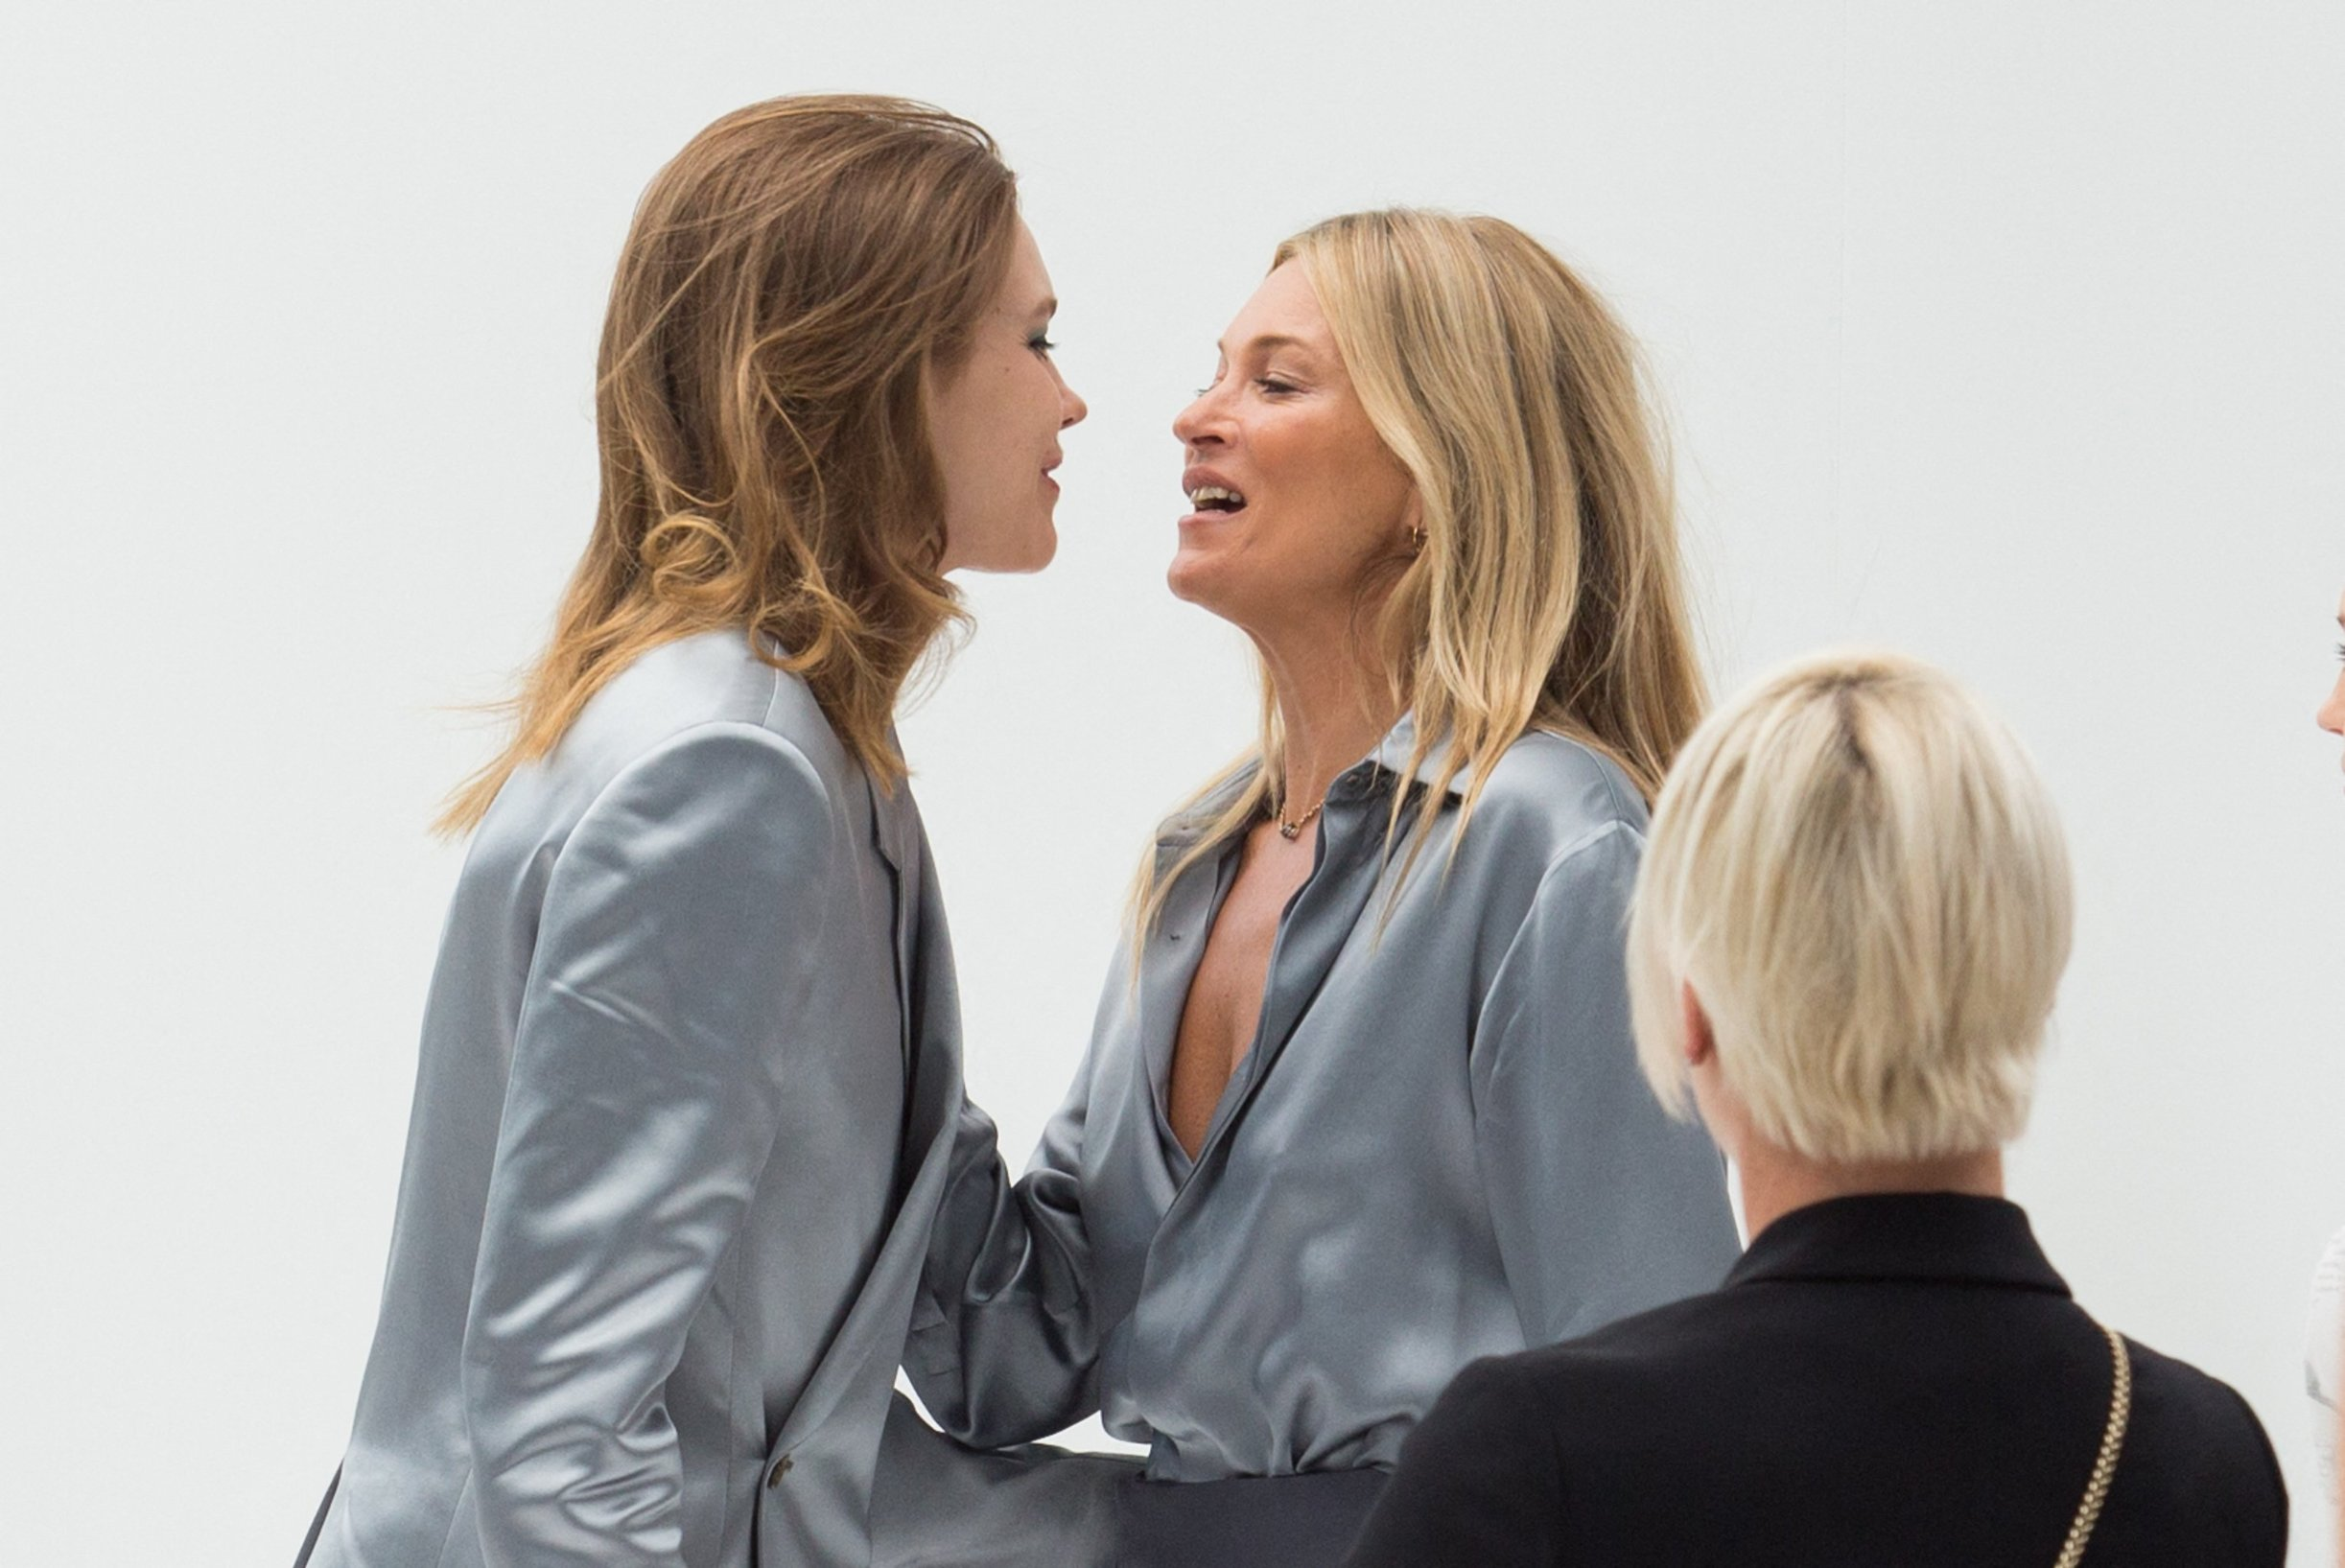 Natalia Vodianova and Kate Moss arrives at Dior fashion Show during Menswear Spring/Summer 2020 on June 21, 2019 in Paris, France., Image: 450496701, License: Rights-managed, Restrictions: , Model Release: no, Credit line: Profimedia, Abaca Press